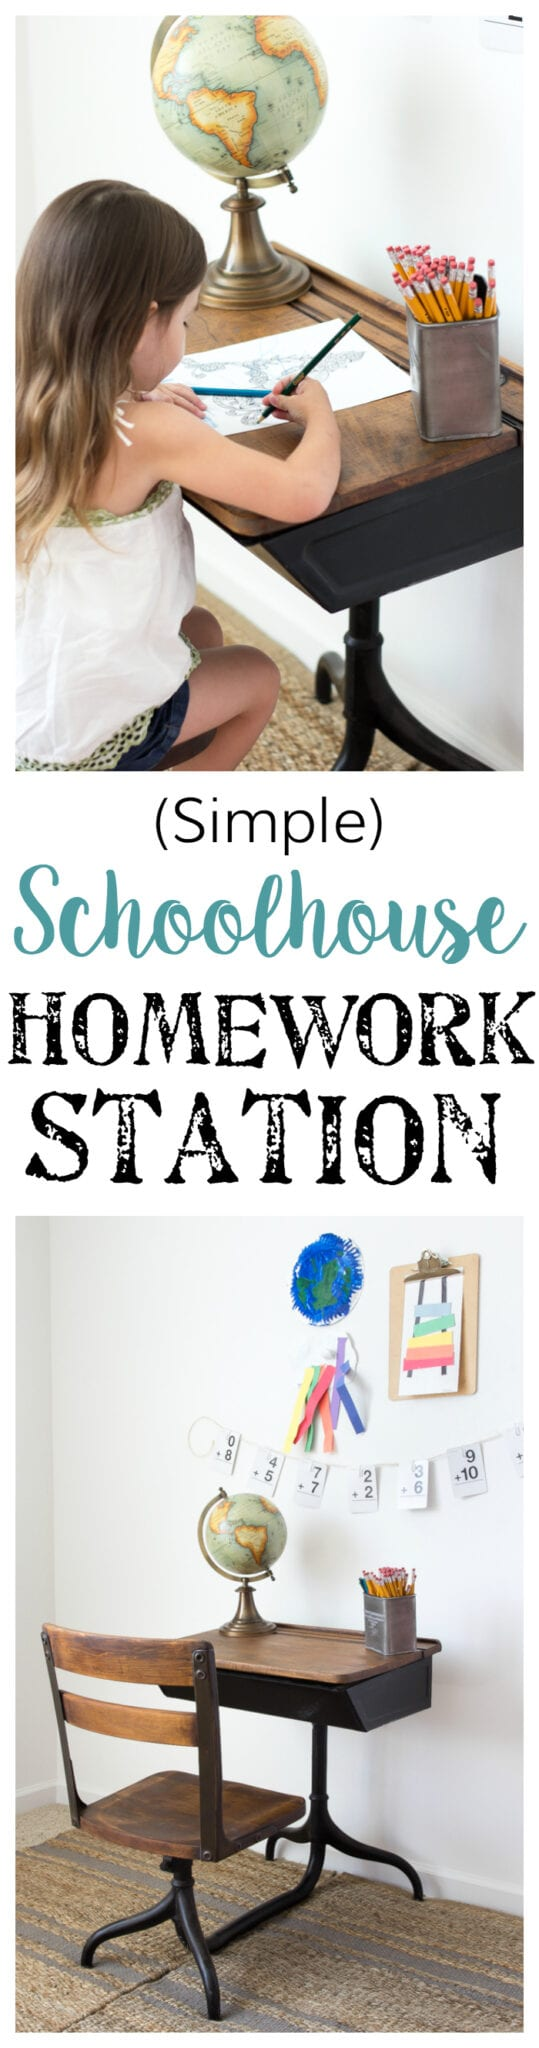 Websites for homework help